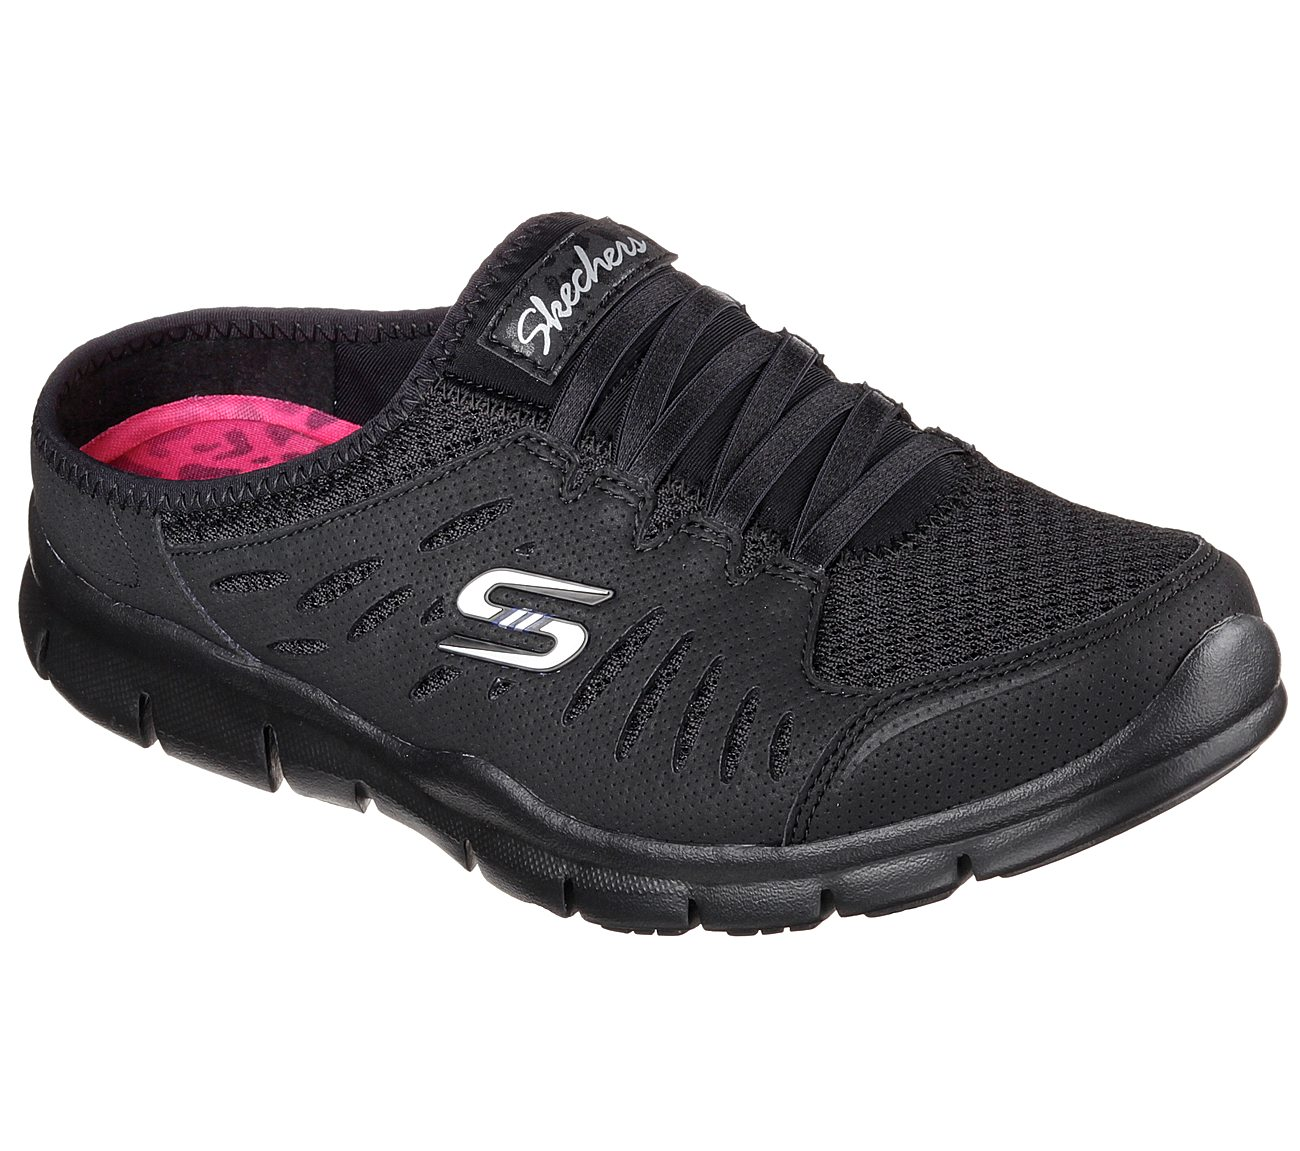 83b232a119b Buy SKECHERS Gratis - No Limits Sport Active Shoes only  67.00